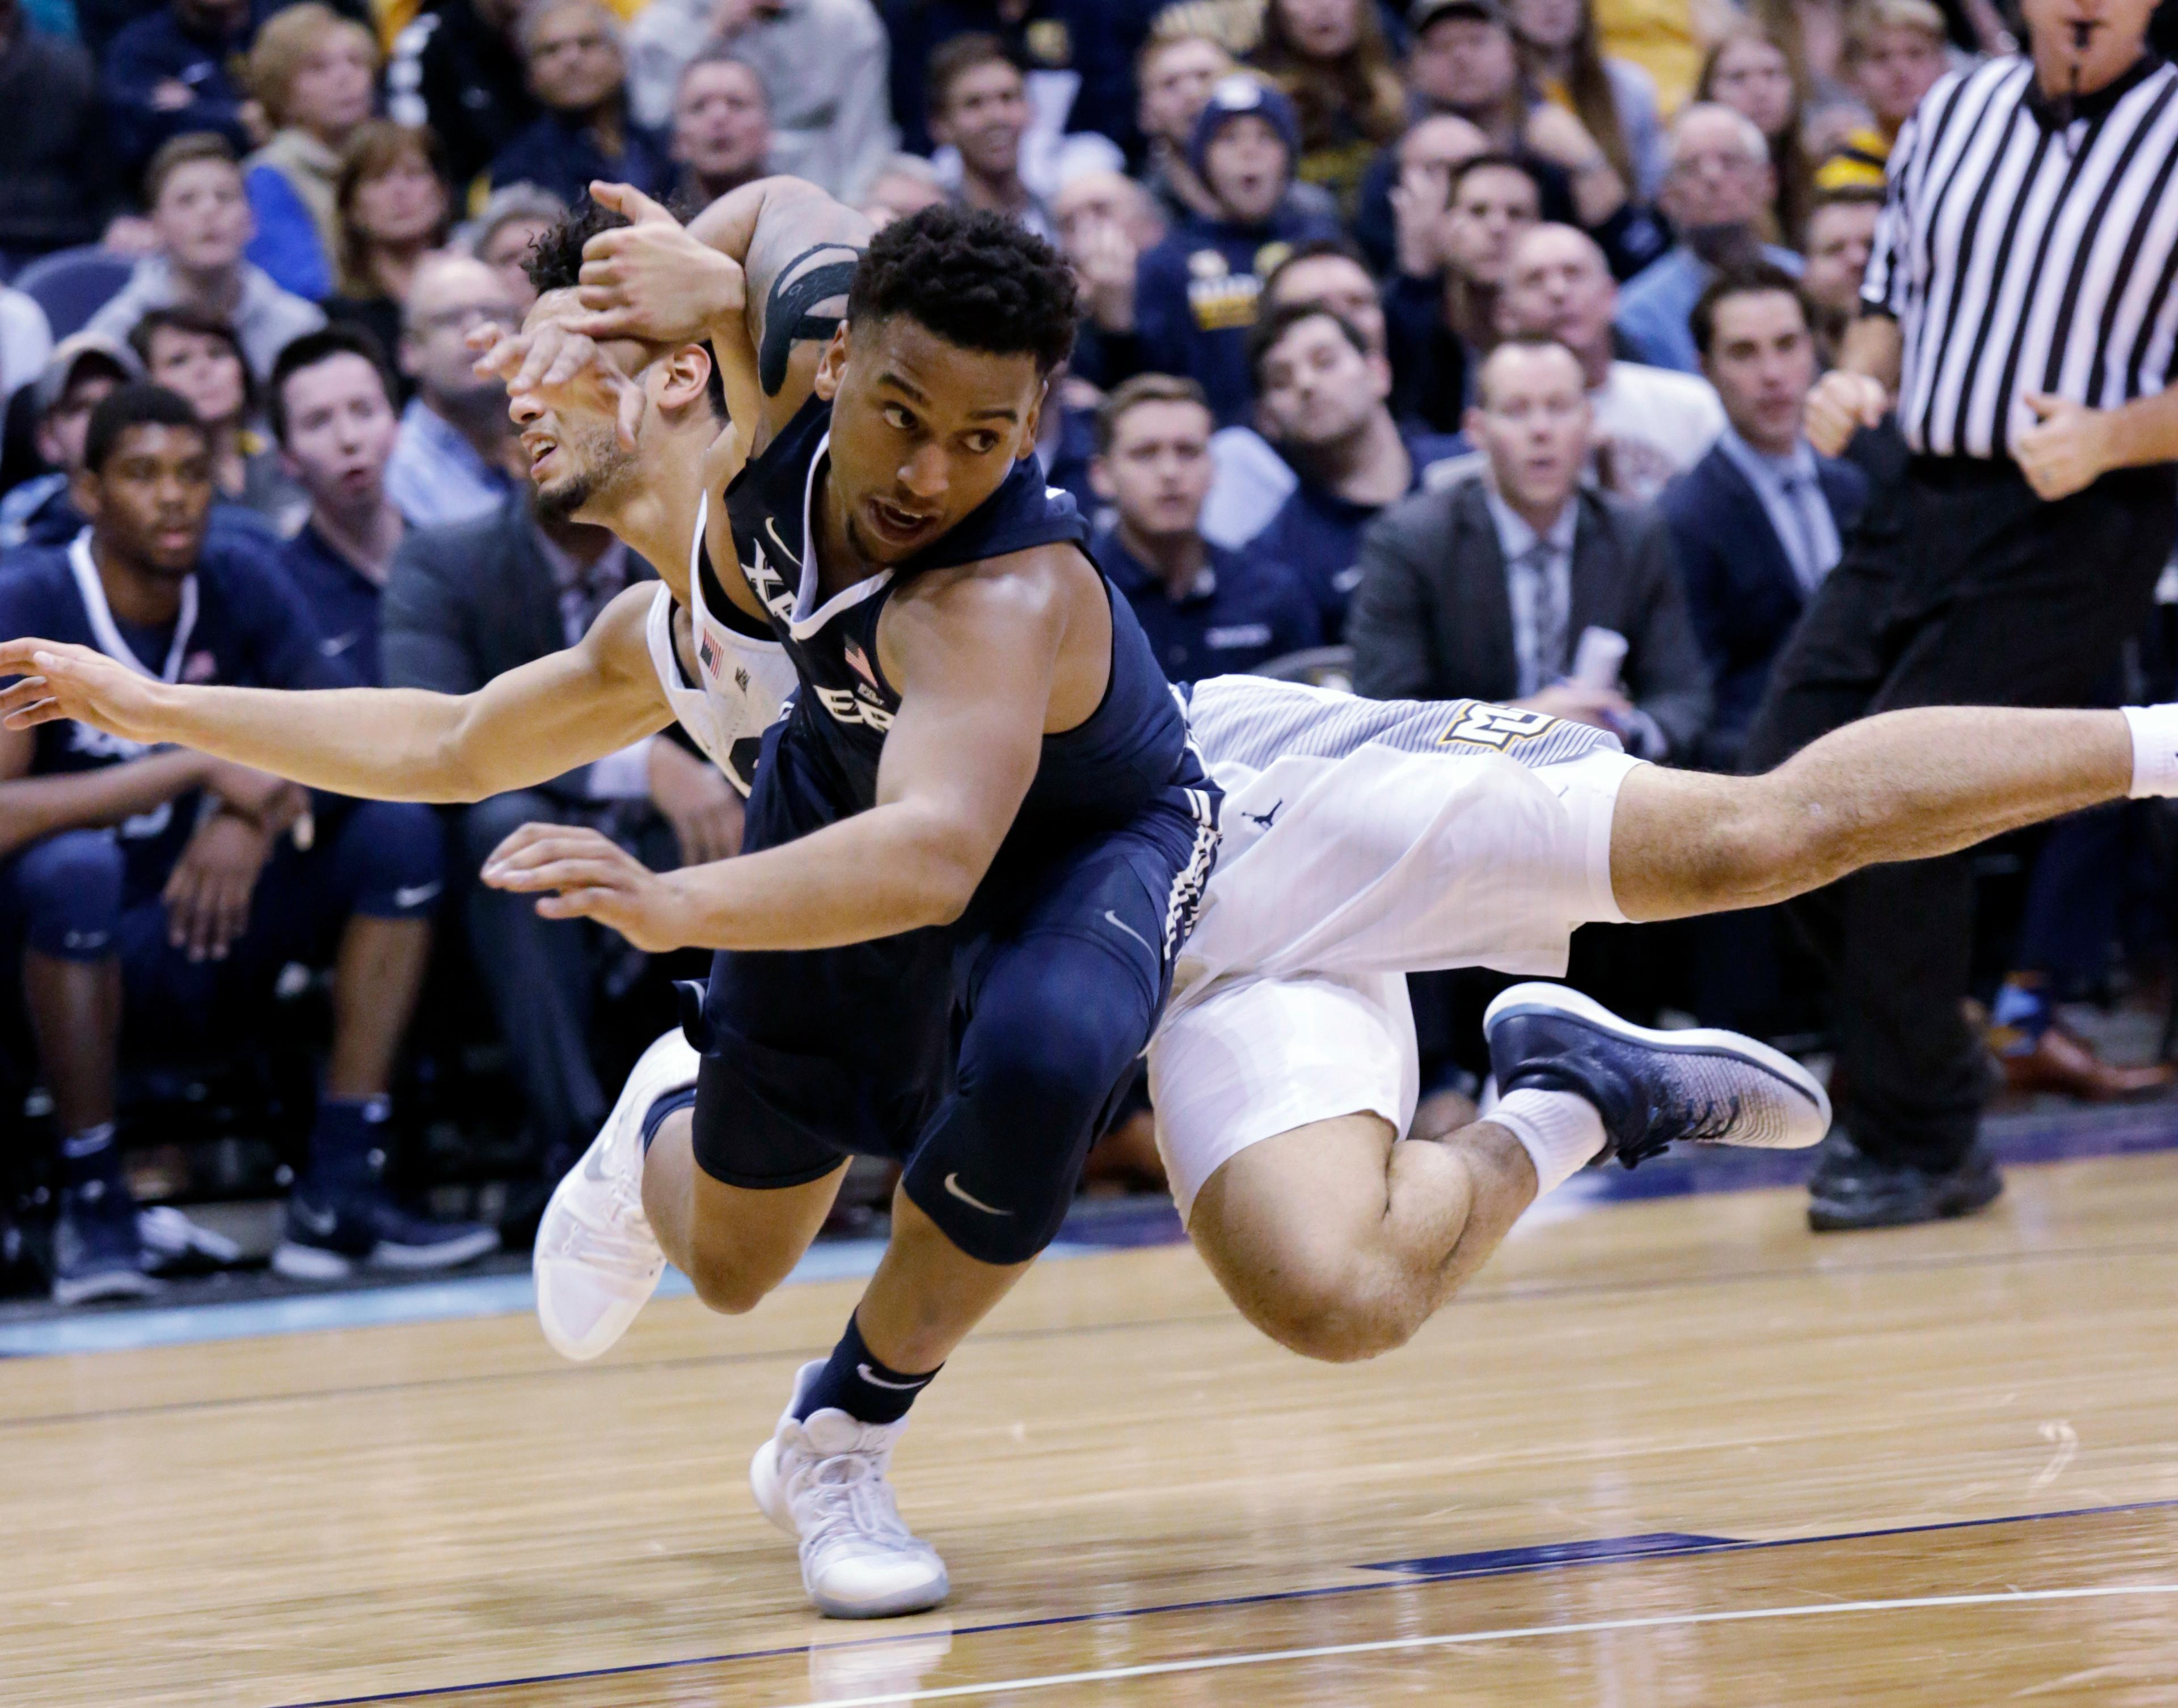 Xavier guard Trevon Bluiett, front, is fouled by Marquette guard Markus Howard during the first half of a basketball game, Wednesday, Dec. 27, 2017, in Milwaukee. (AP Photo/Darren Hauck)